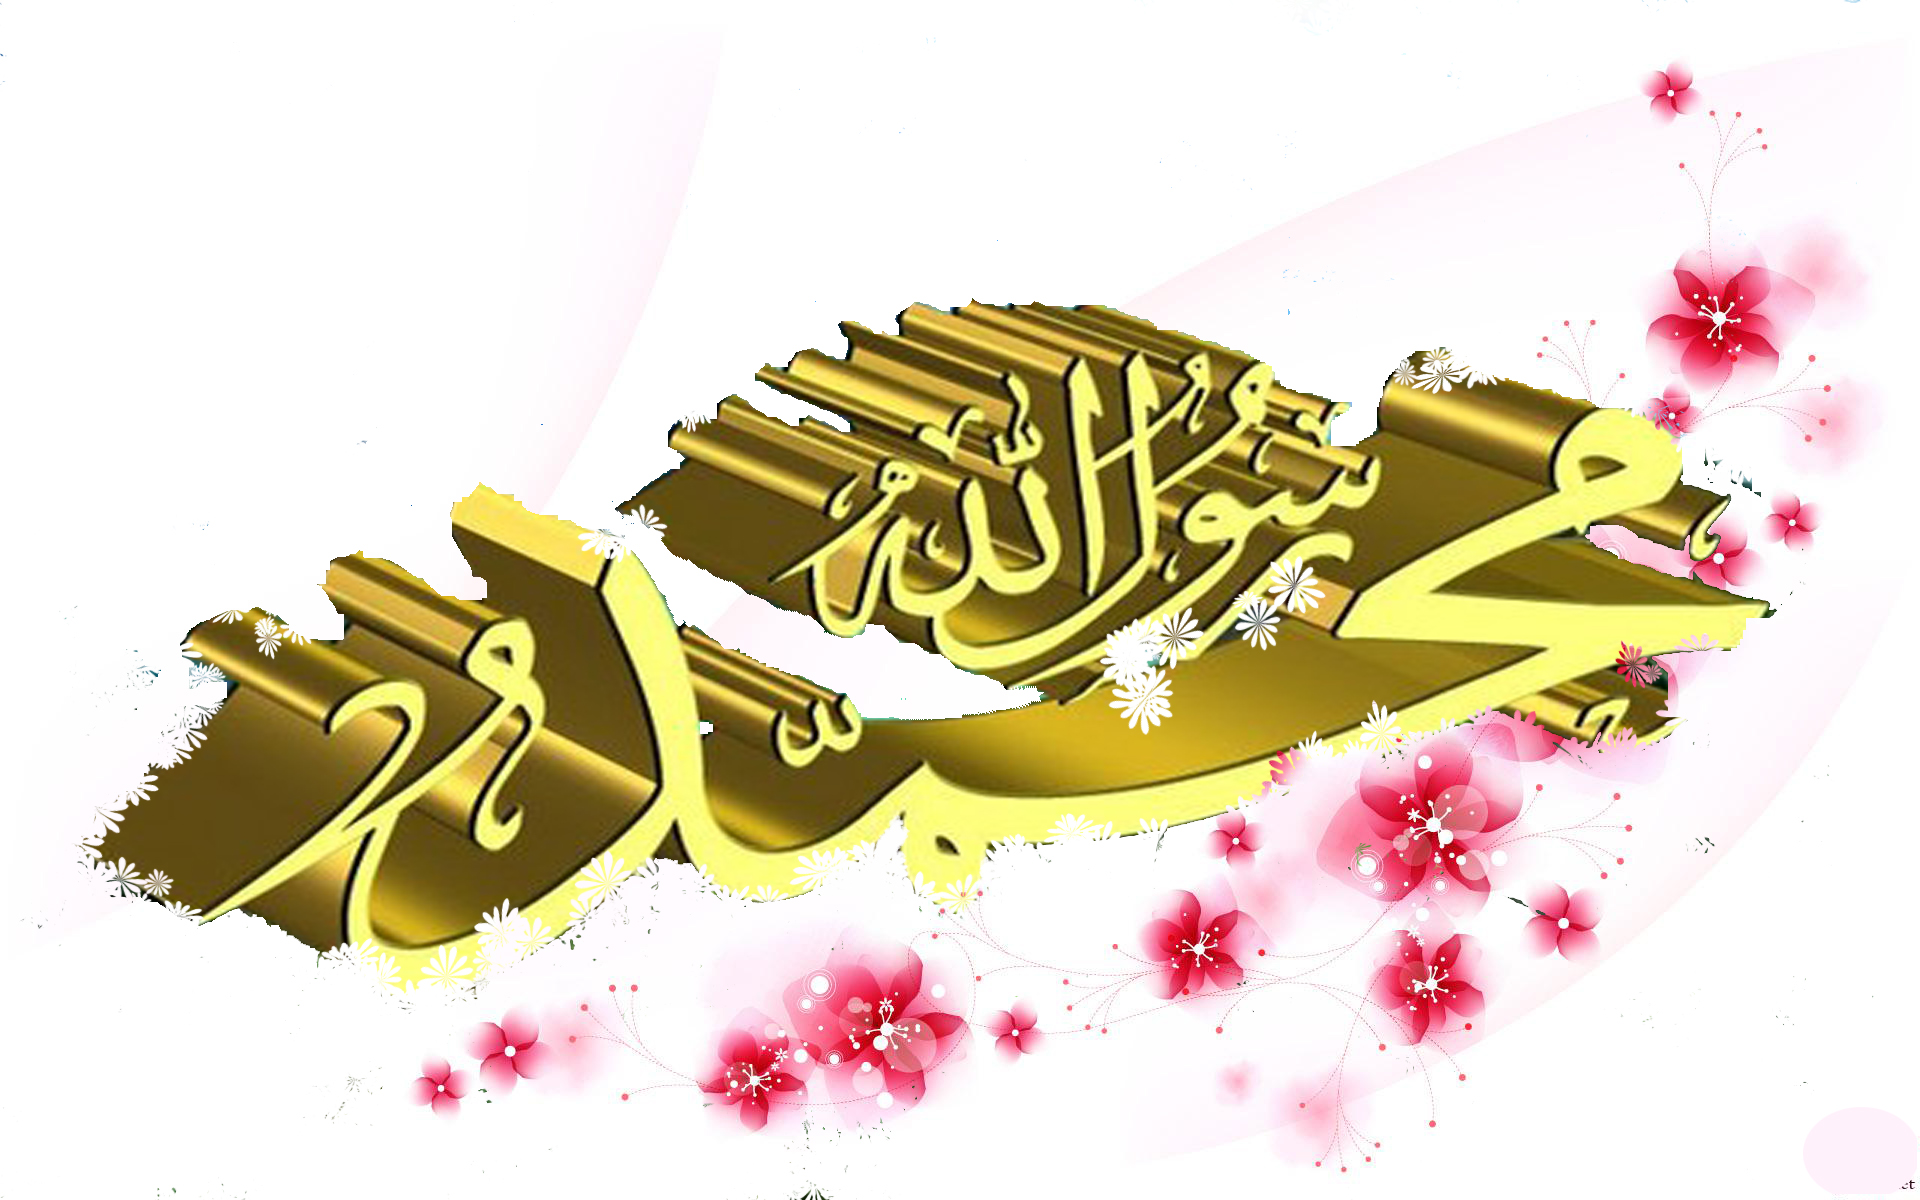 Mohamad peace upon 14230223824.jpg